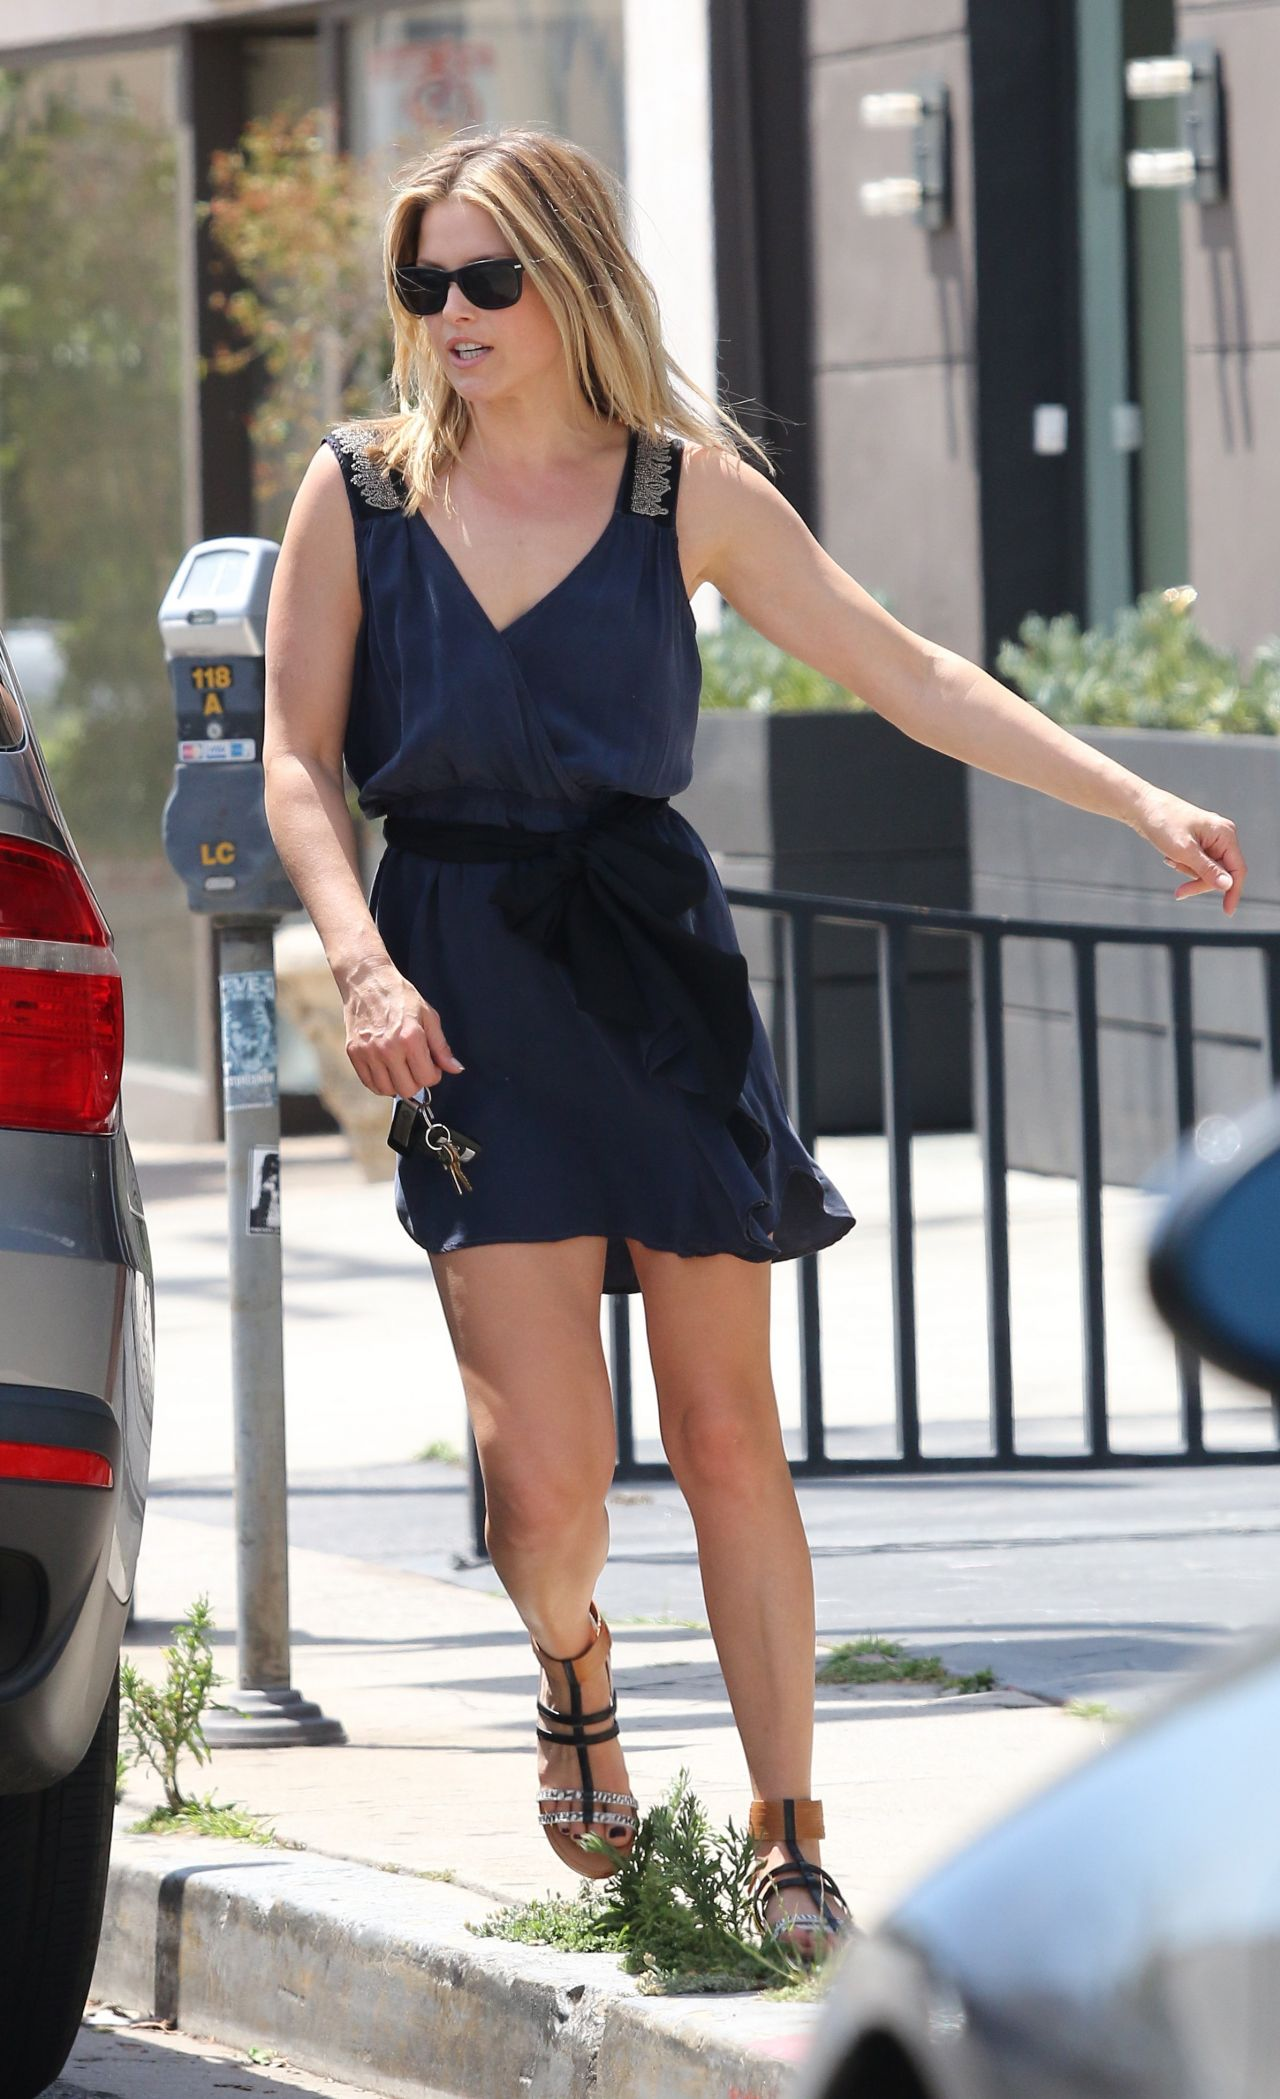 Ali Larter Shows Legs in Mini Dress - Out in Los Angeles - April 2014